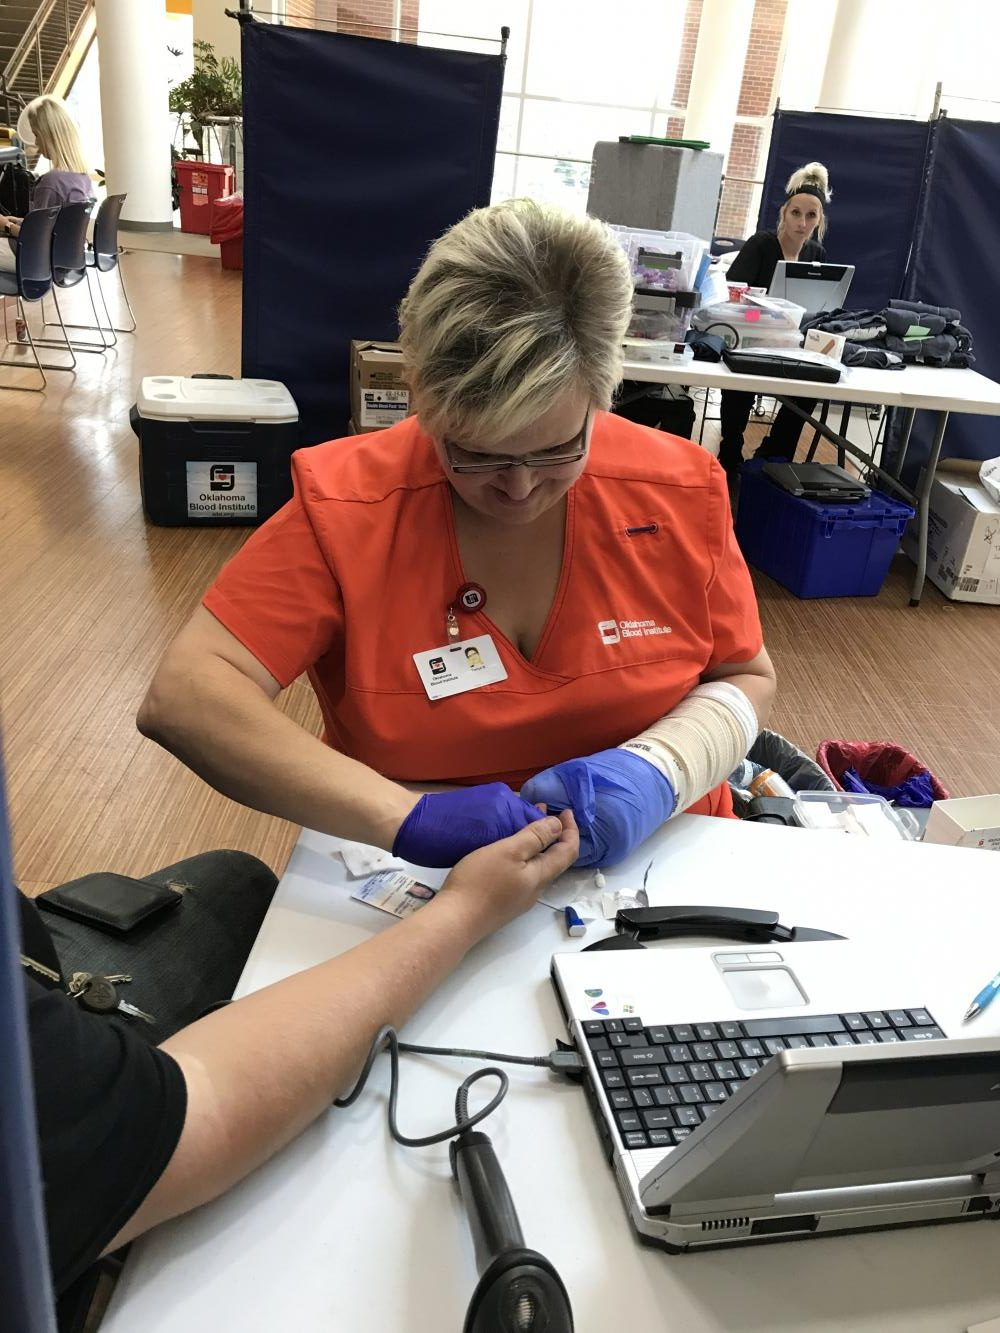 Oklahoma Blood Institute nurse prepares for an IV removal. Students lined up to give blood in hopes to help Hurricane Harvey victims.